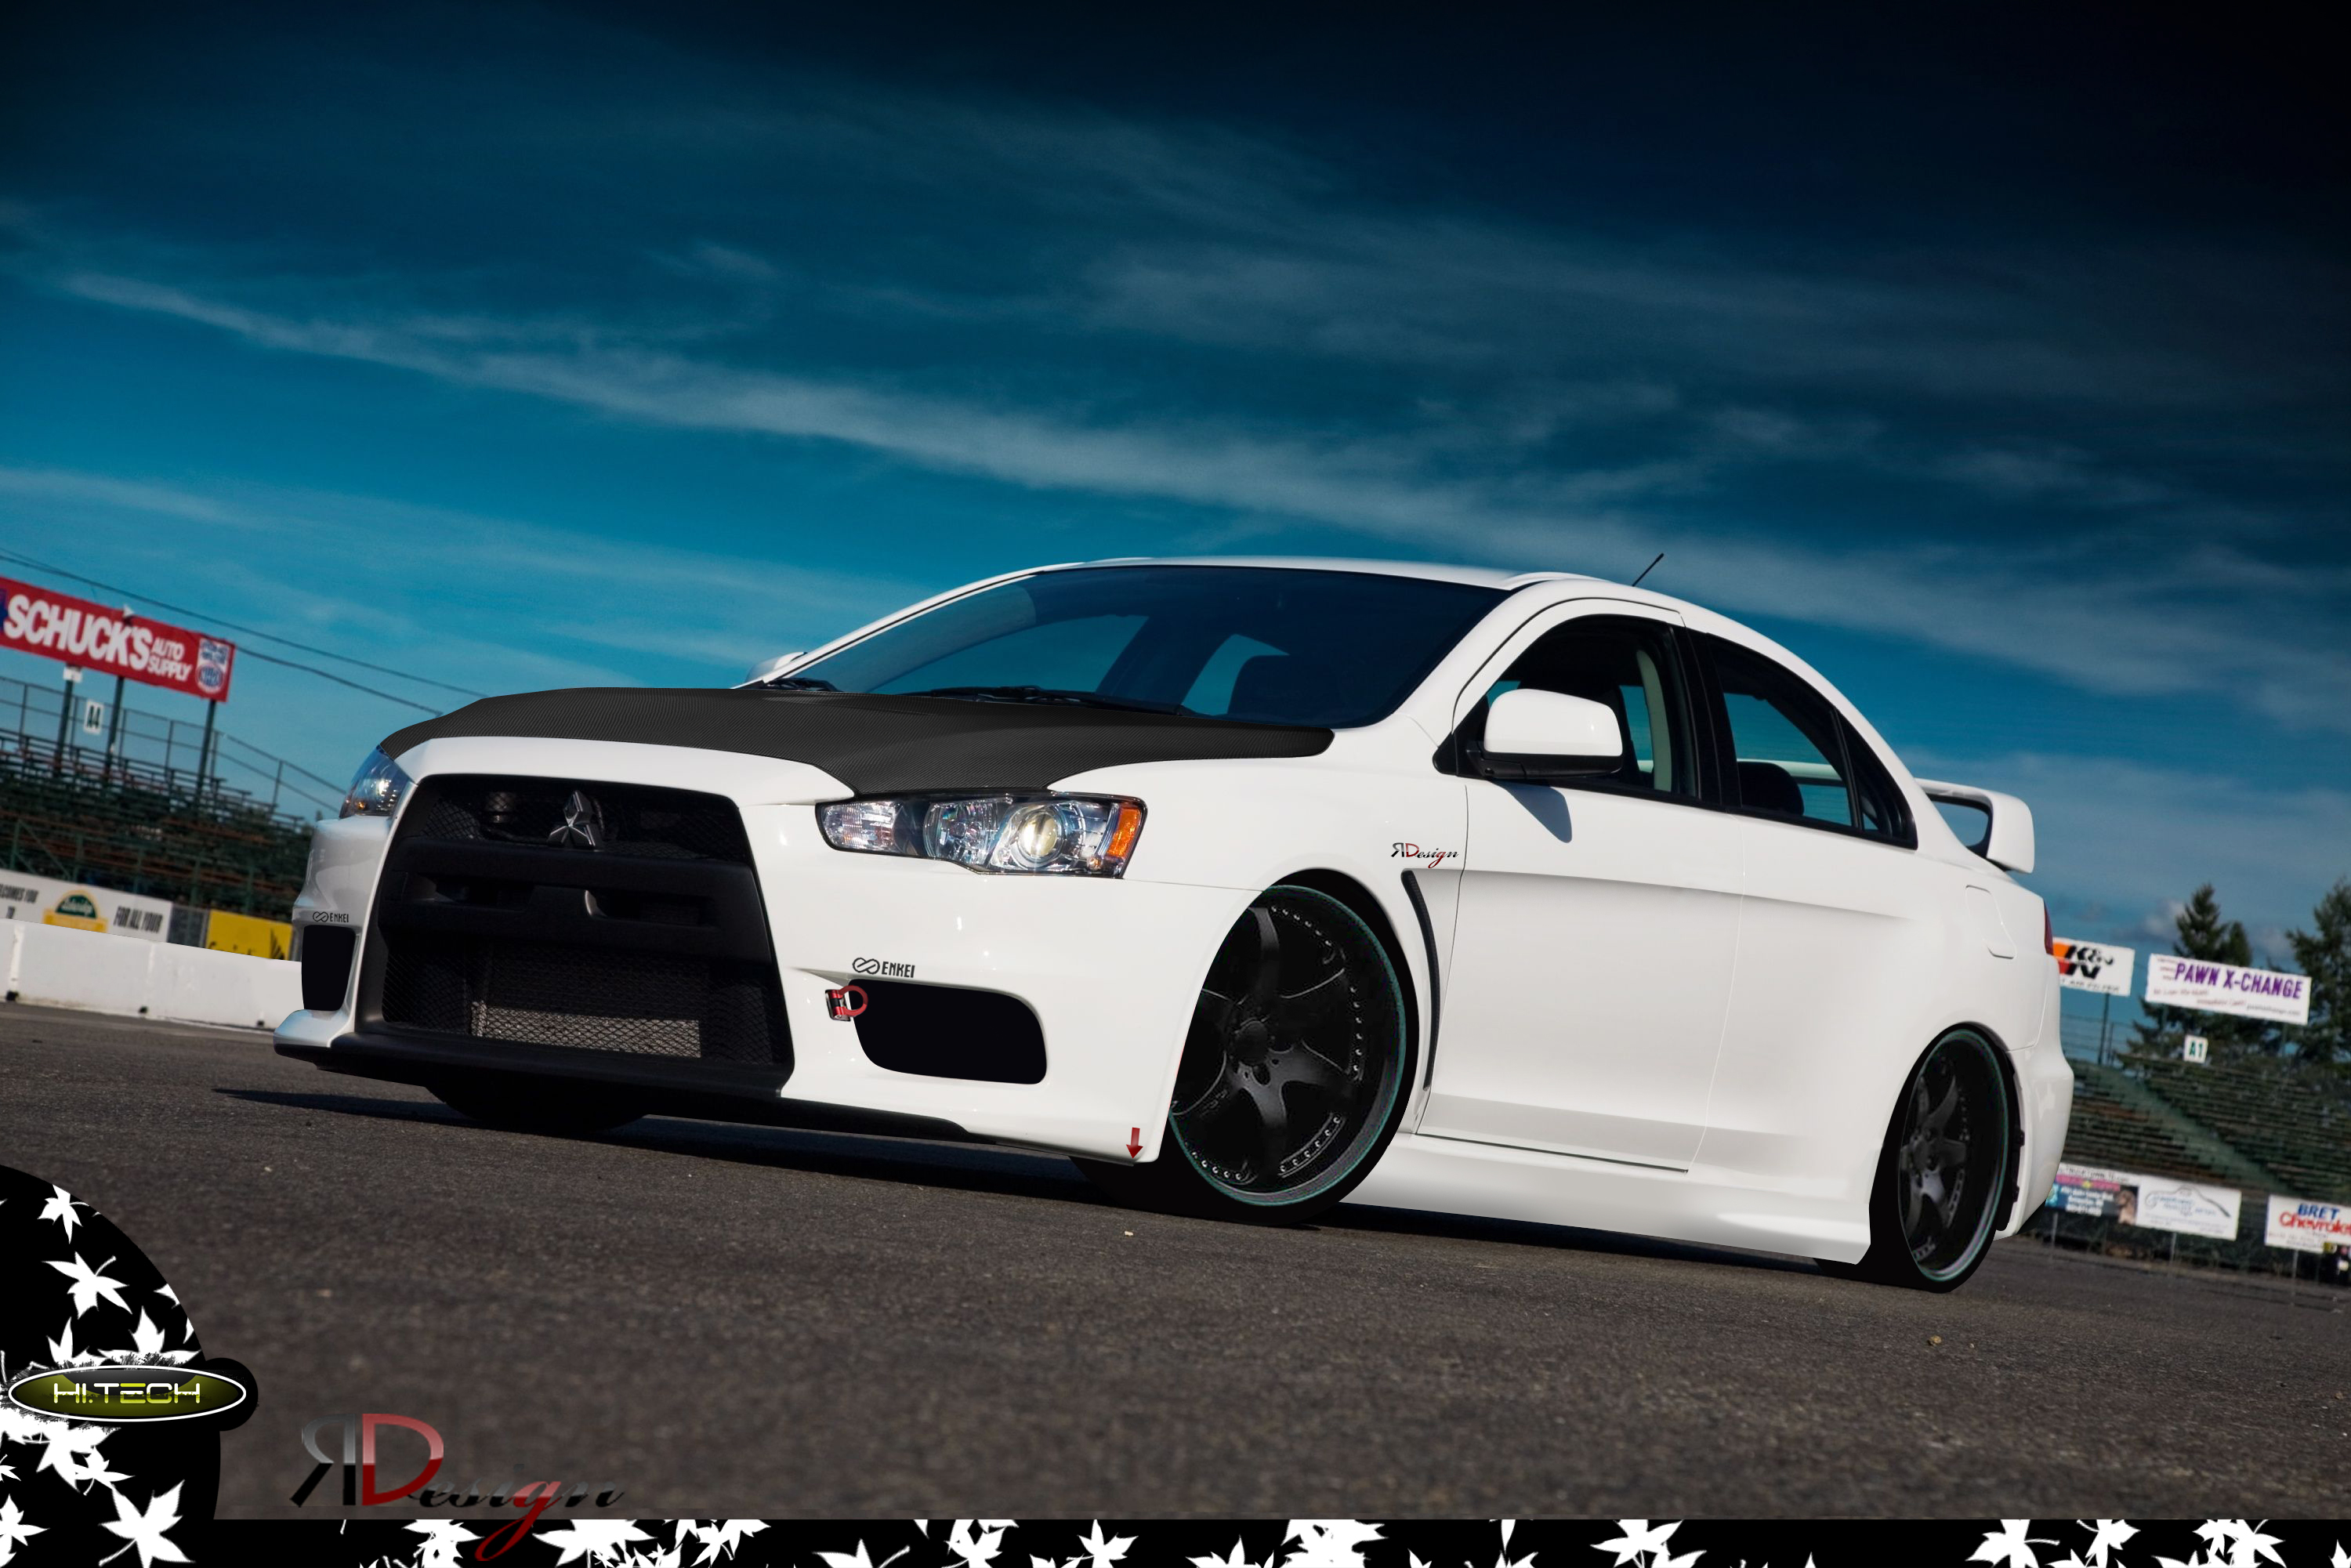 Mitsubishi Lancer 2008 Rdesign By Lokodesigner On Deviantart